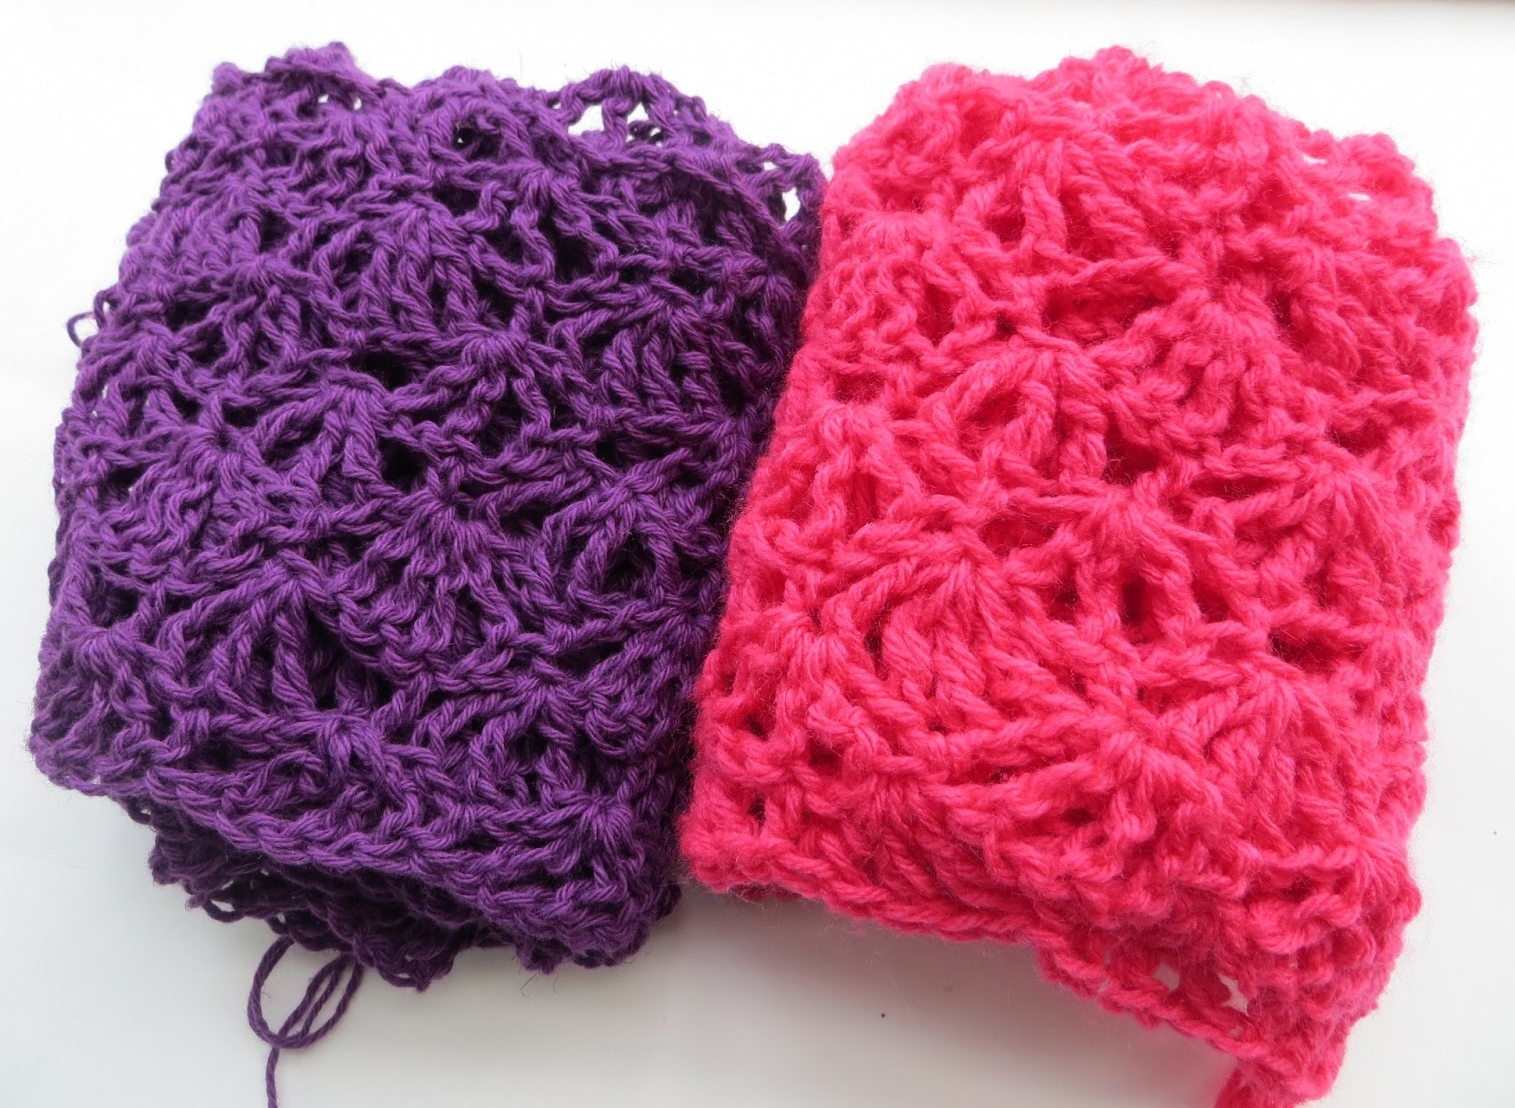 Free Crochet Patterns For Dressy Scarves : Crochet Dreamz: Alana Lacy Scarf, Free Crochet Pattern